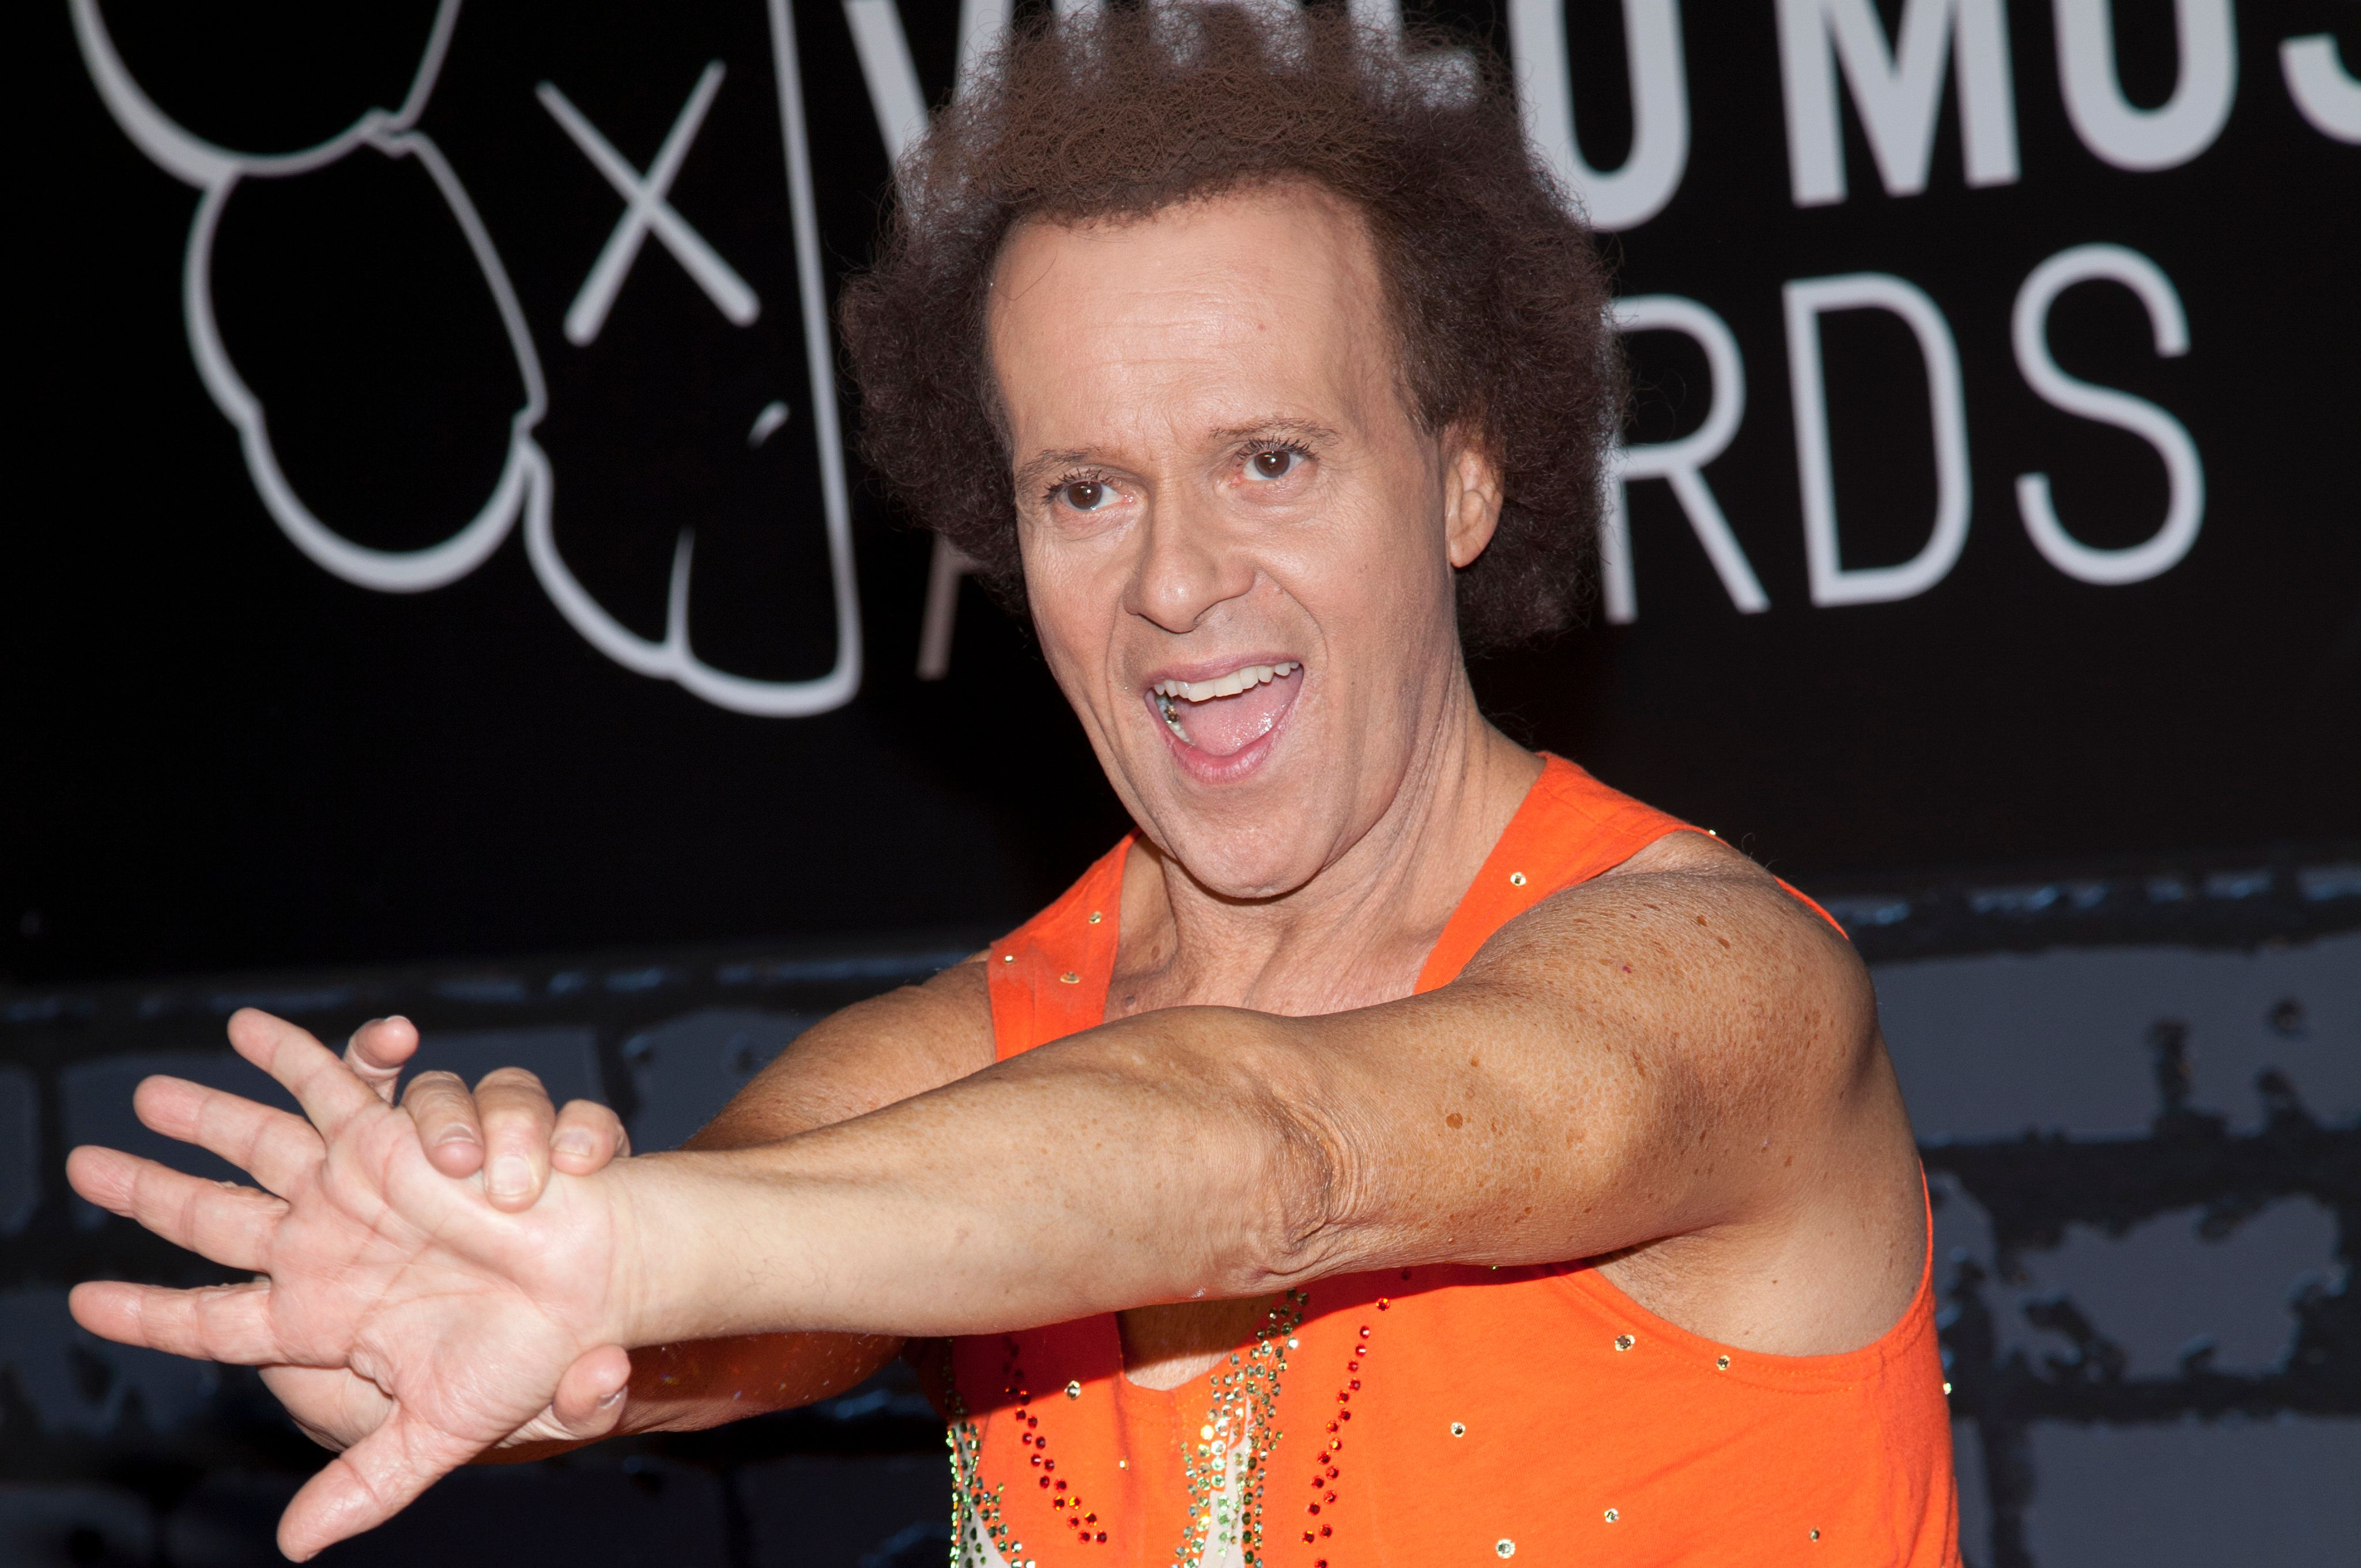 Richard Simmons attends the 2013 MTV Video Music Awards at the Barclays Center in New York City. �� LAN (Photo by Lars Niki/Corbis via Getty Images)